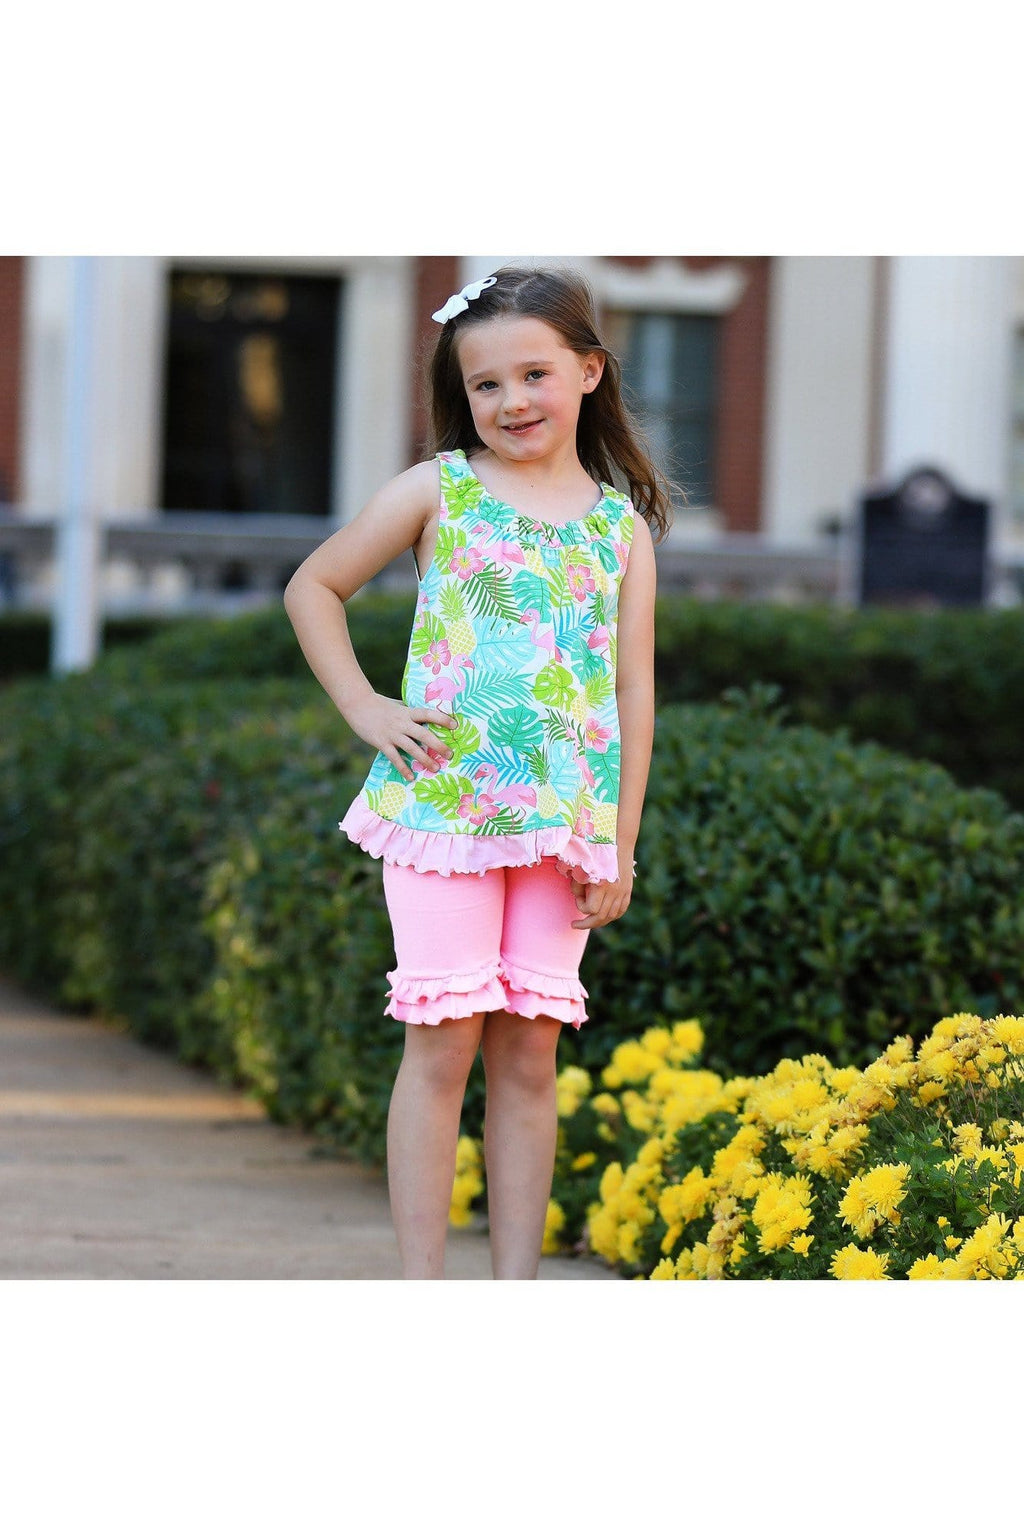 AnnLoren Baby/Toddler Girls Open Back Swing Tank Top with Bow Tropical Design - Himelhoch's